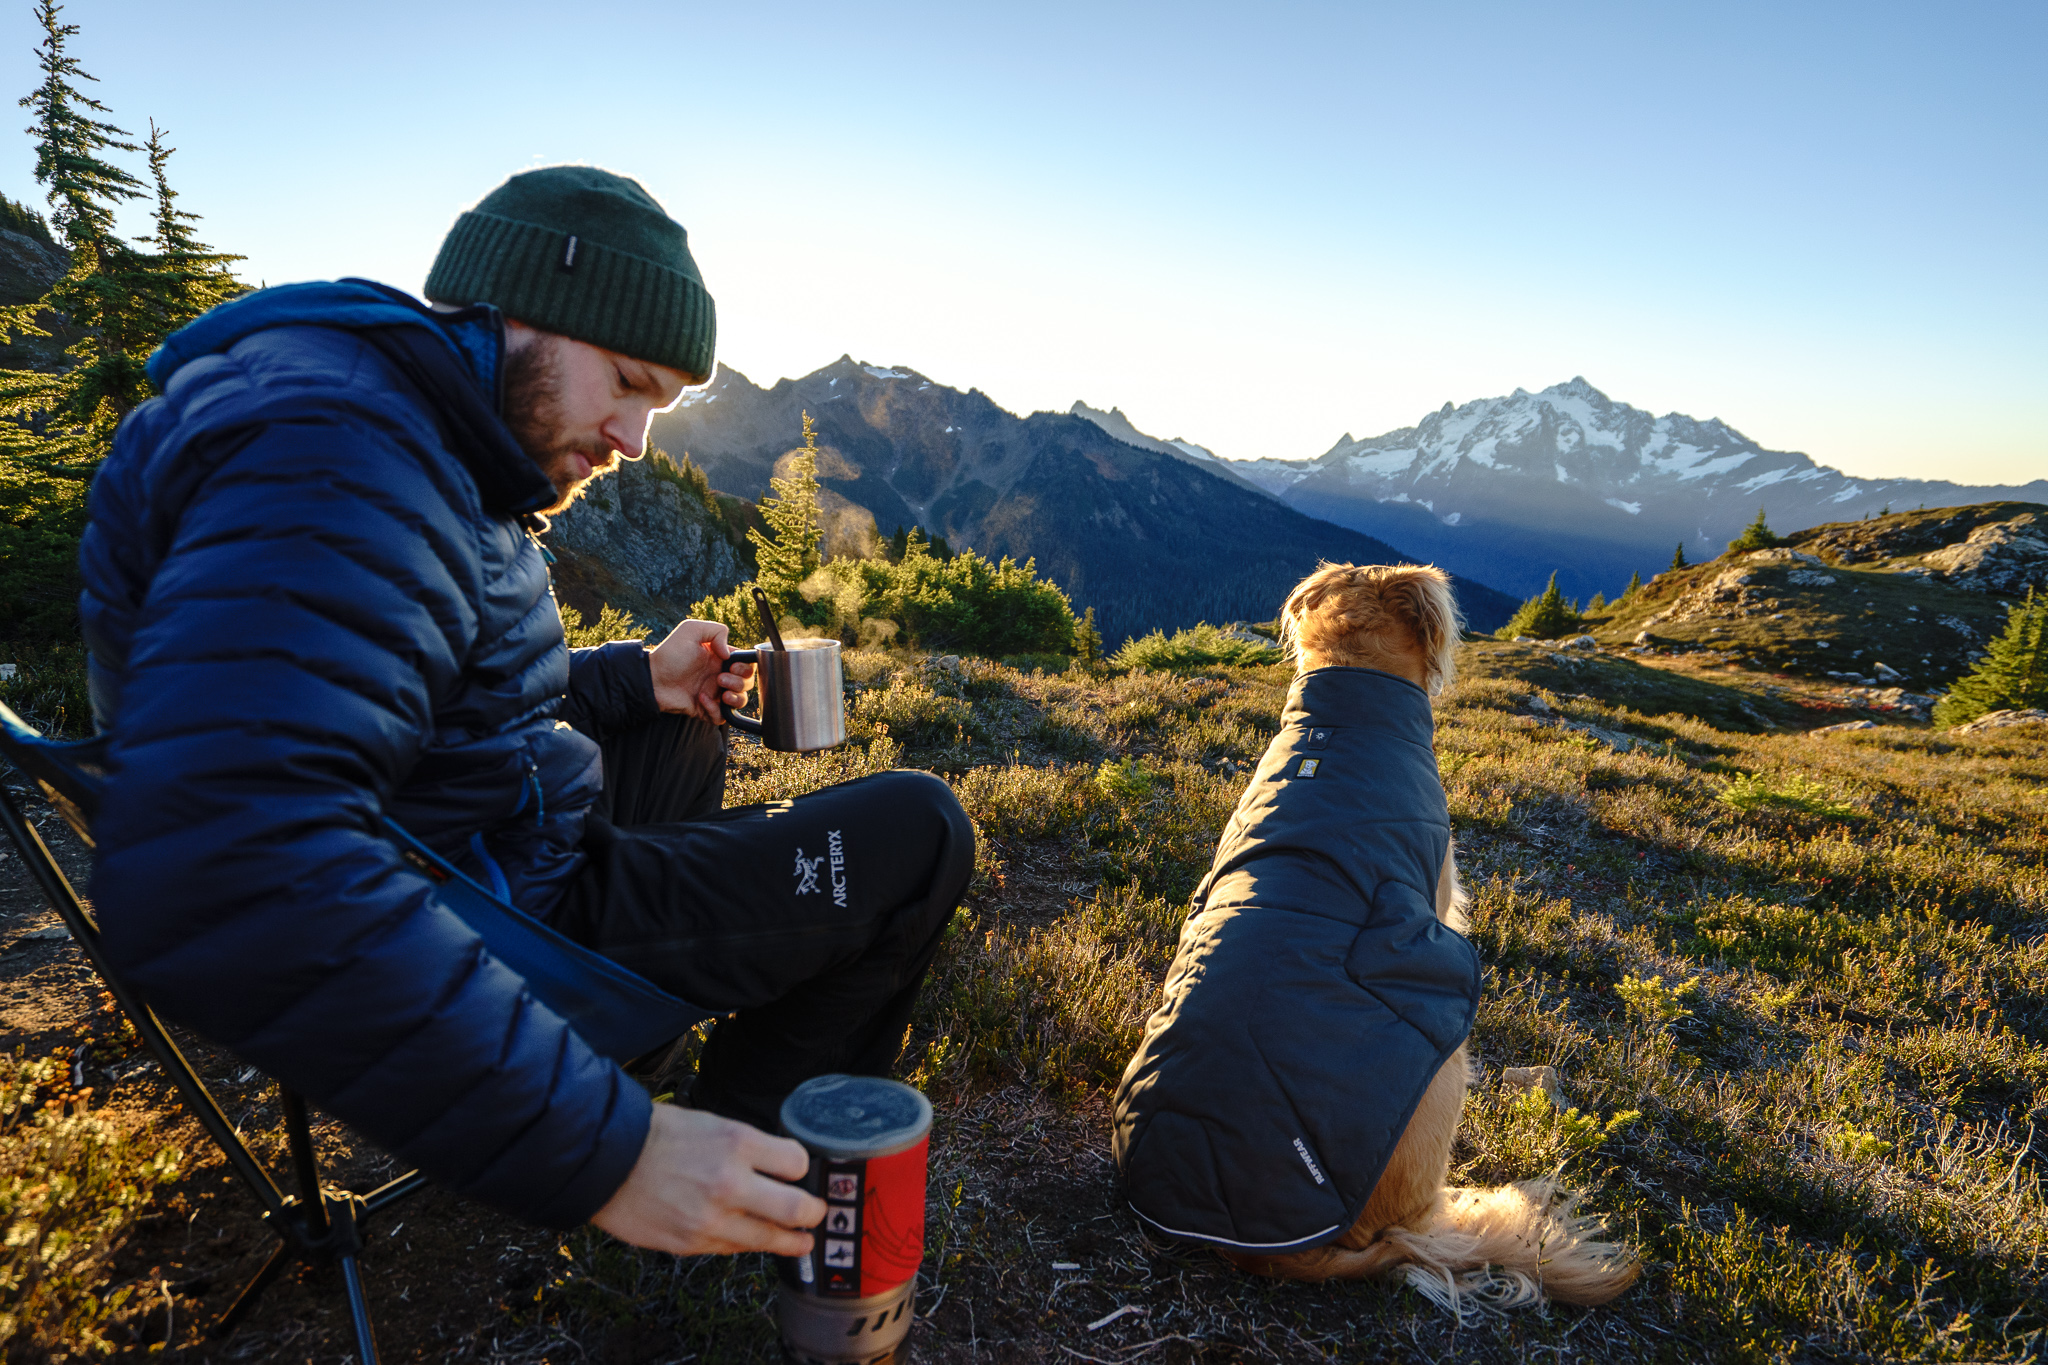 I'll take my morning coffee with a side of Mt. Shuksan, thanks